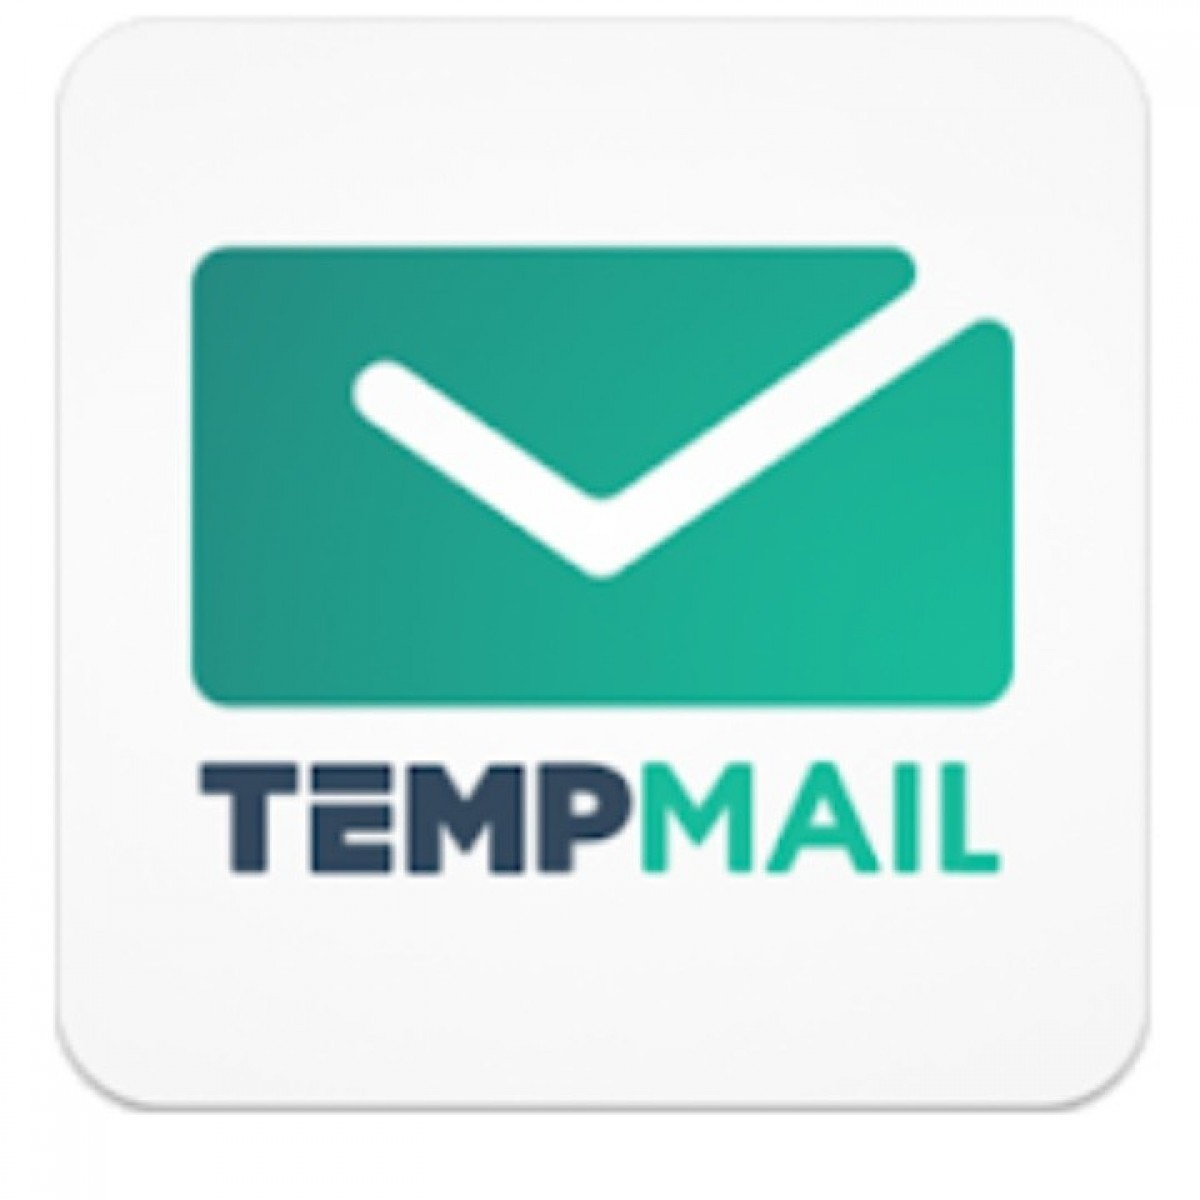 Temp Mail - Temporary Disposable Email